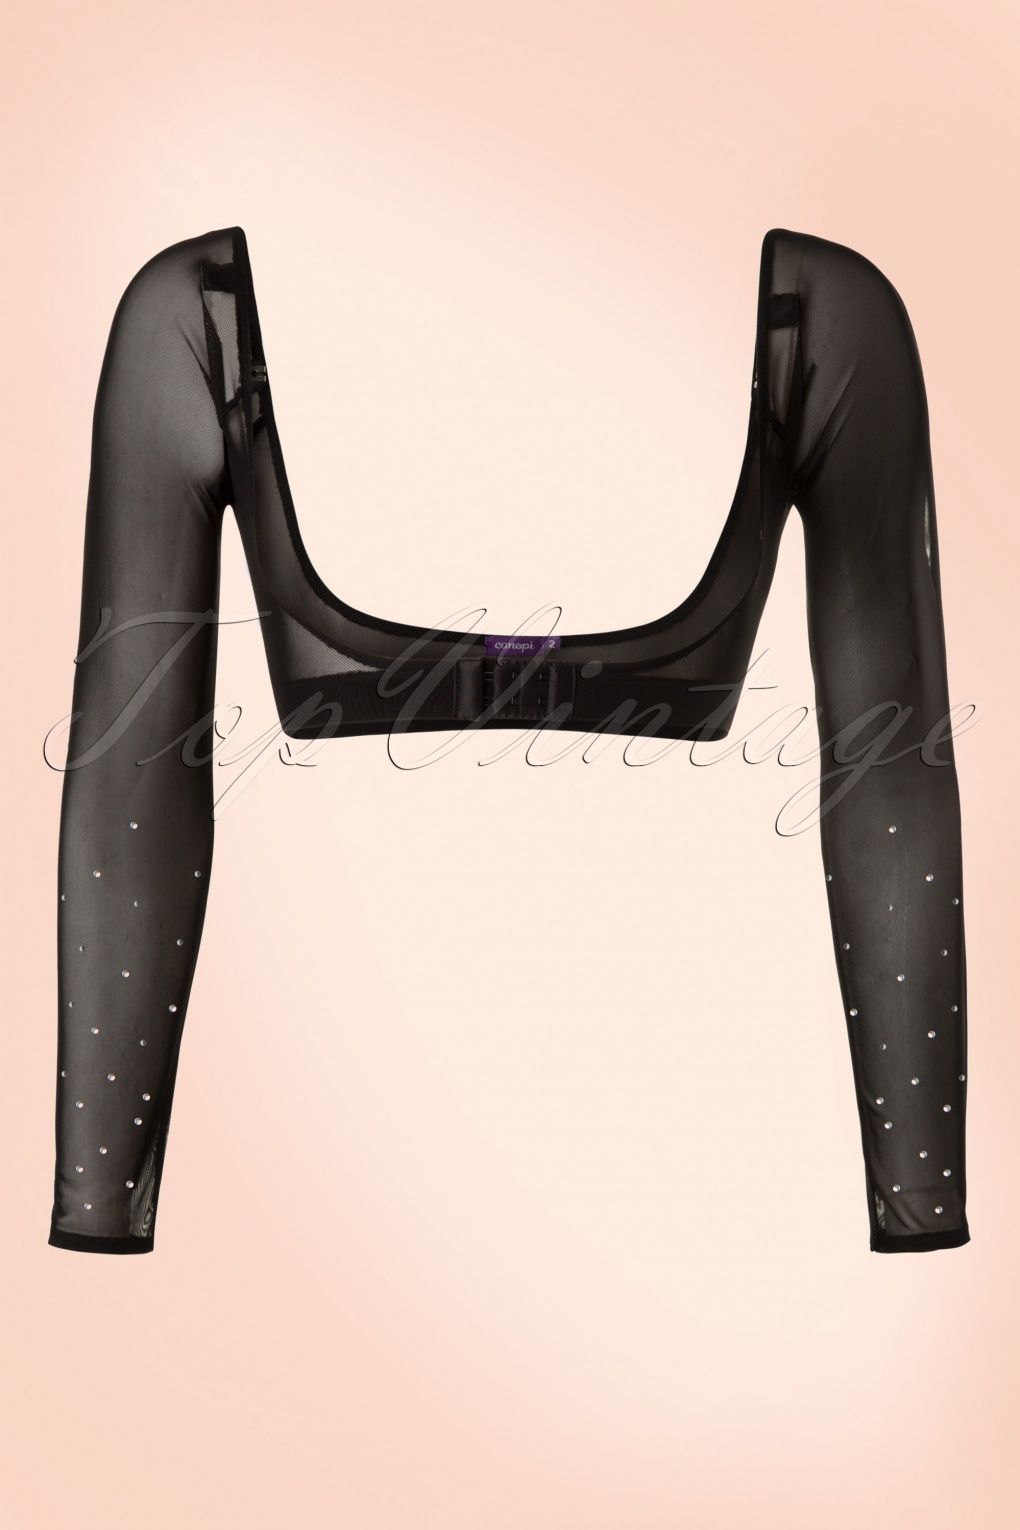 1920s Style Blouses, Shirts, Sweaters, Cardigans Jolie Long Crystal Mesh Sleeves in Black £51.56 AT vintagedancer.com